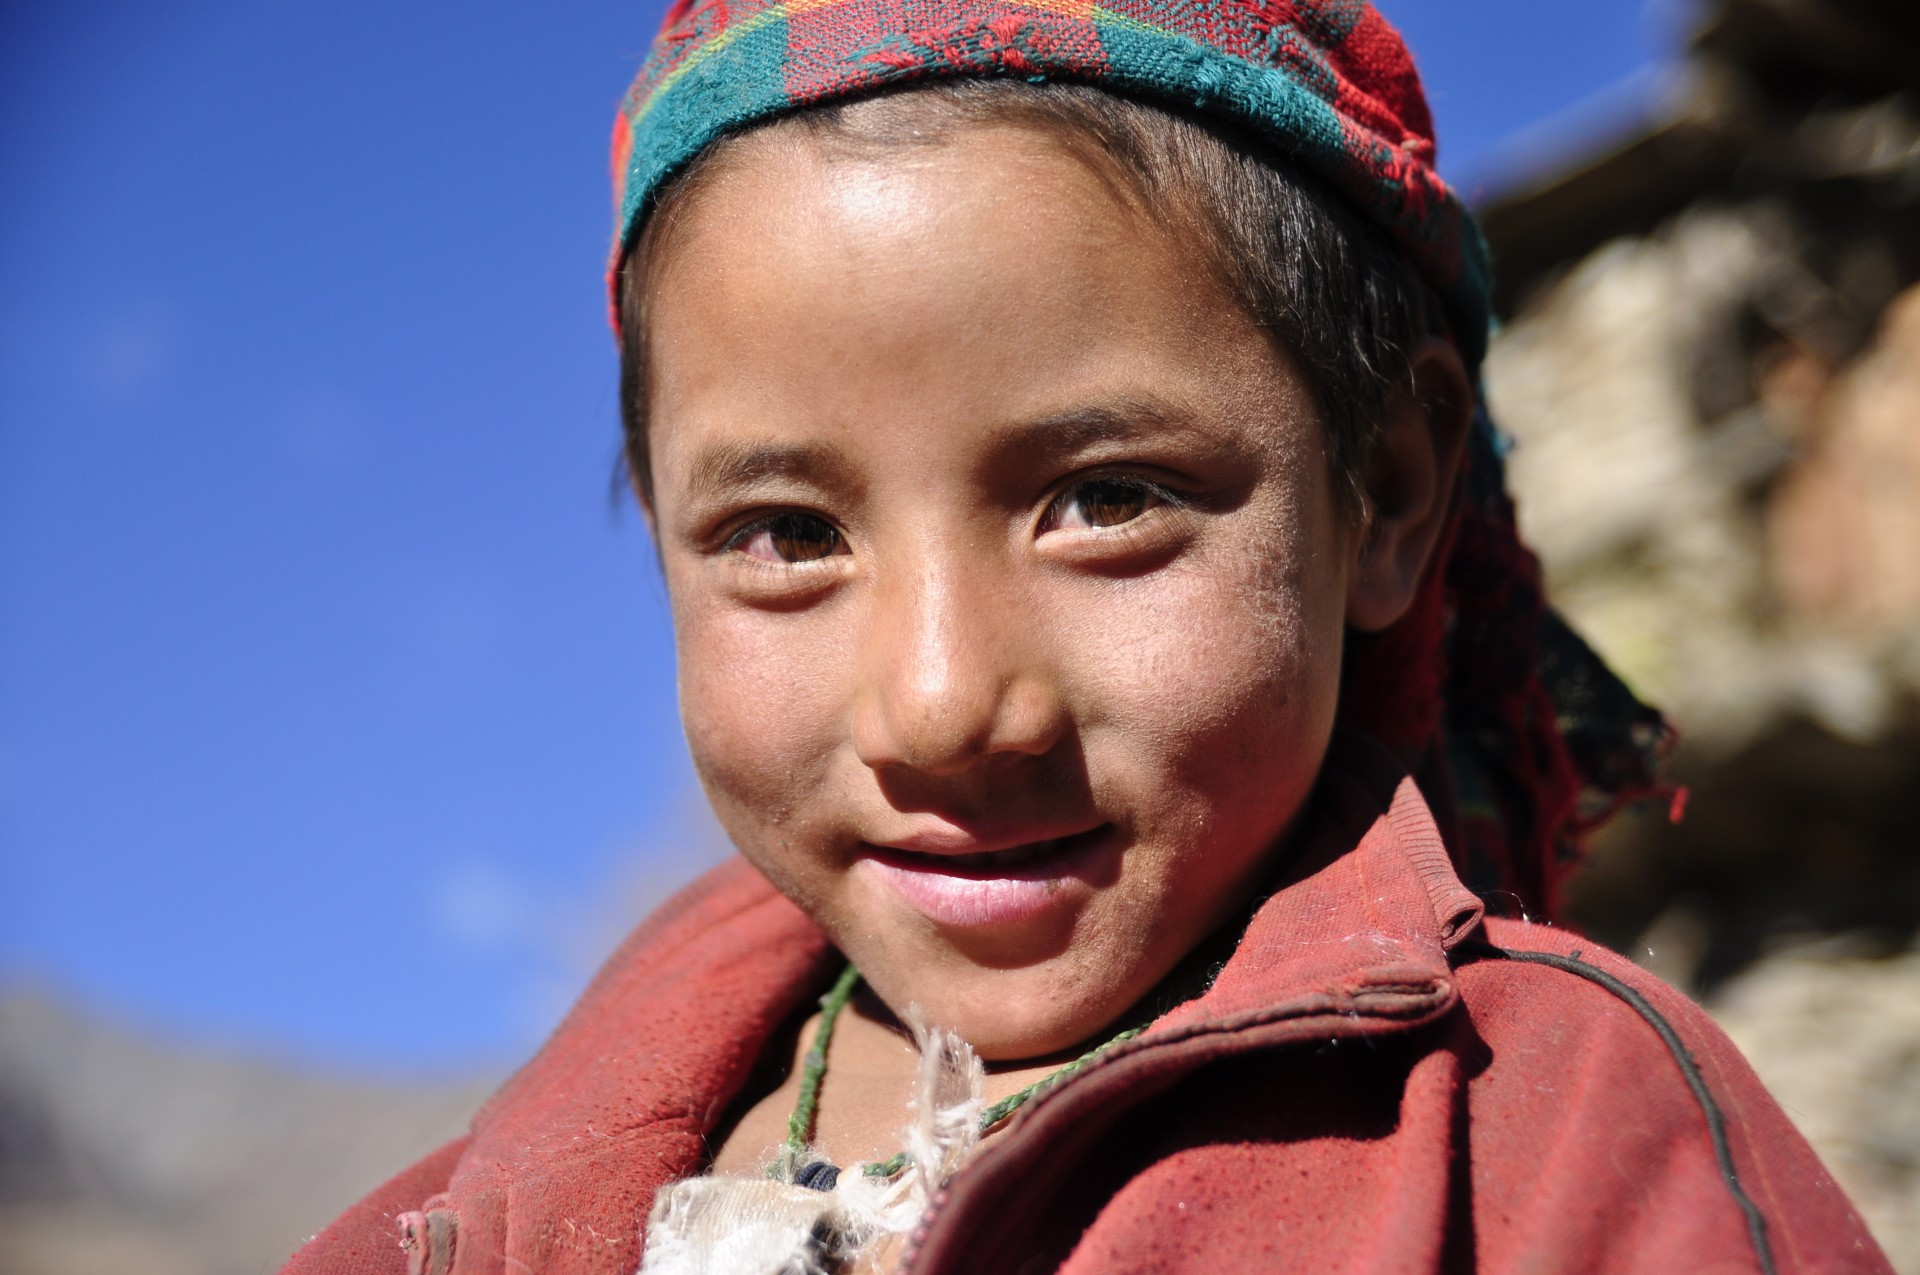 A-child-in-Humla-Nepal.jpg